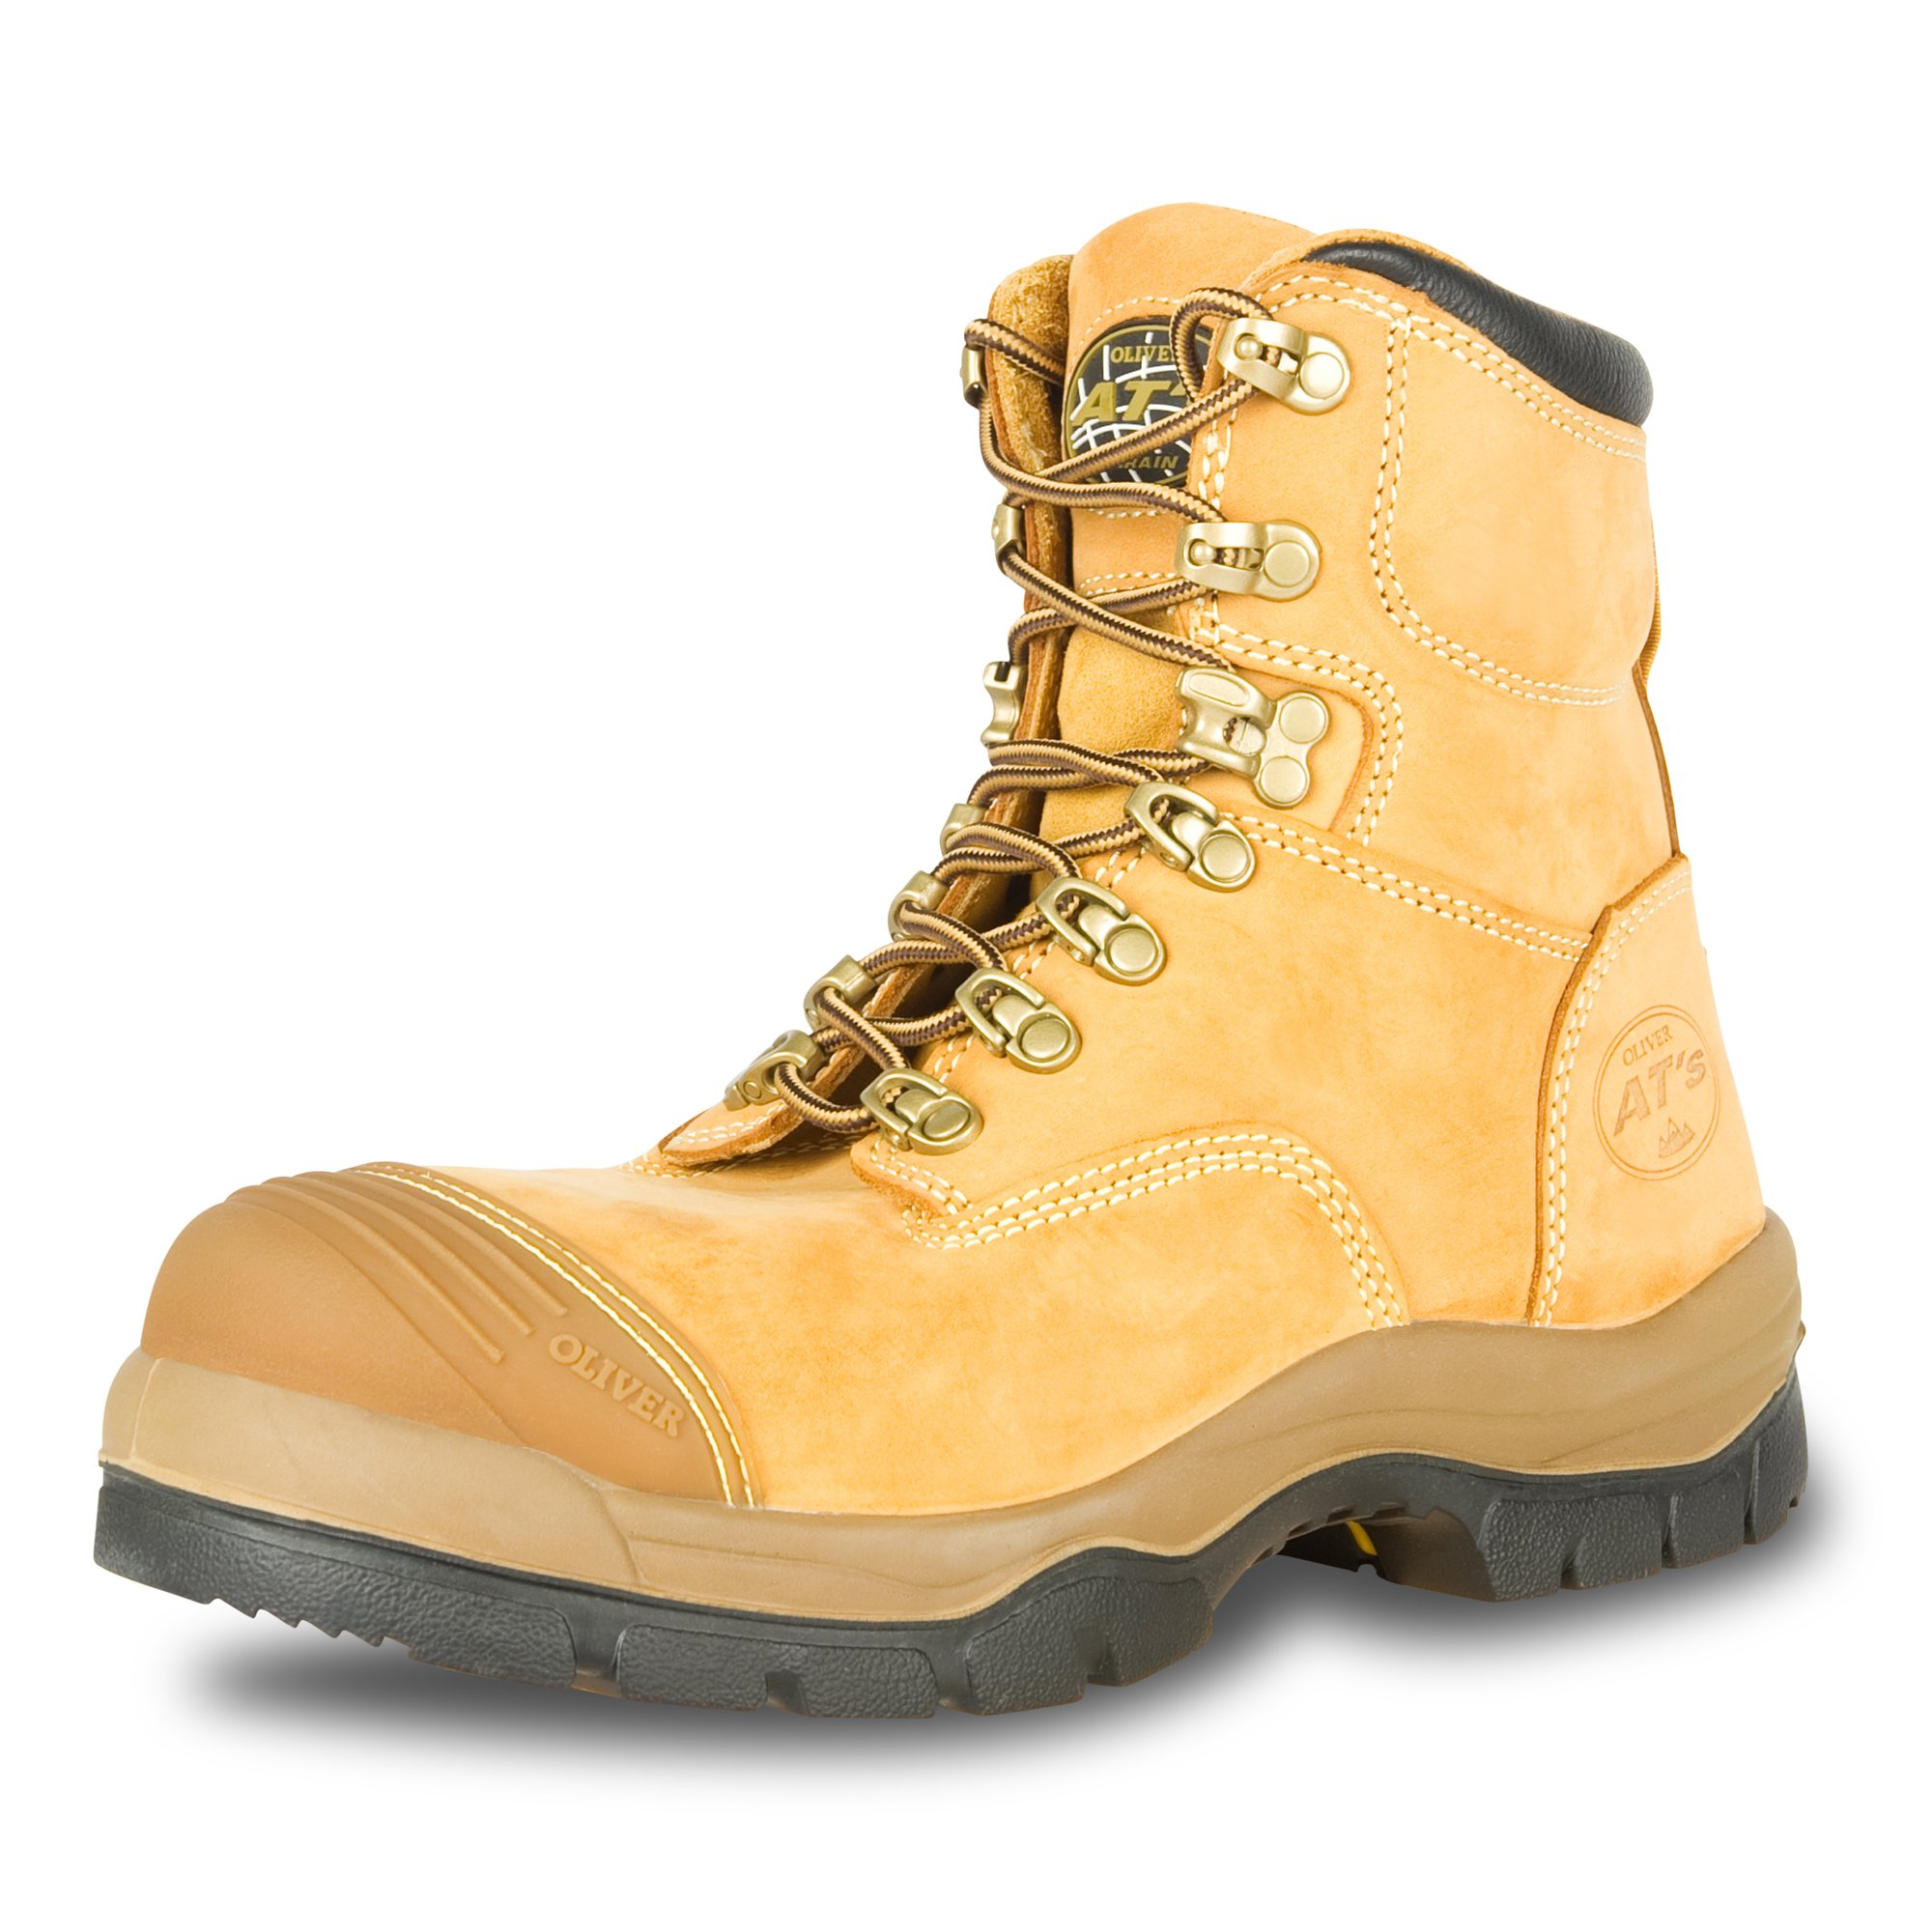 Oliver 55 Series 6'' Leather Men's Steel Toe Work Boots, Wheat (55232)